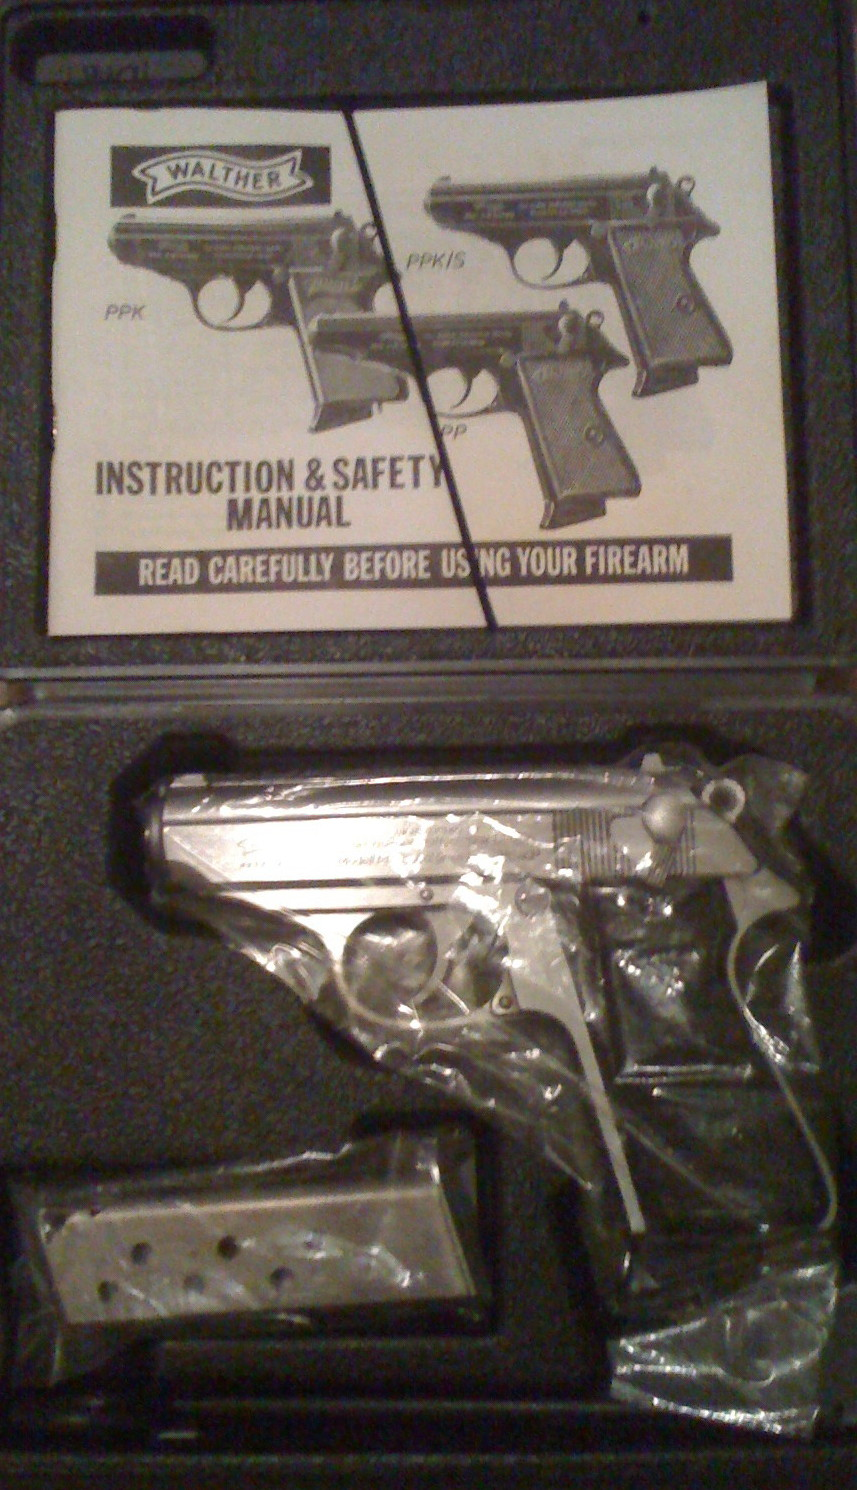 ppks technical manual product user guide instruction u2022 rh testdpc co Walther PPK 380 Problems walther ppk 380 owner's manual